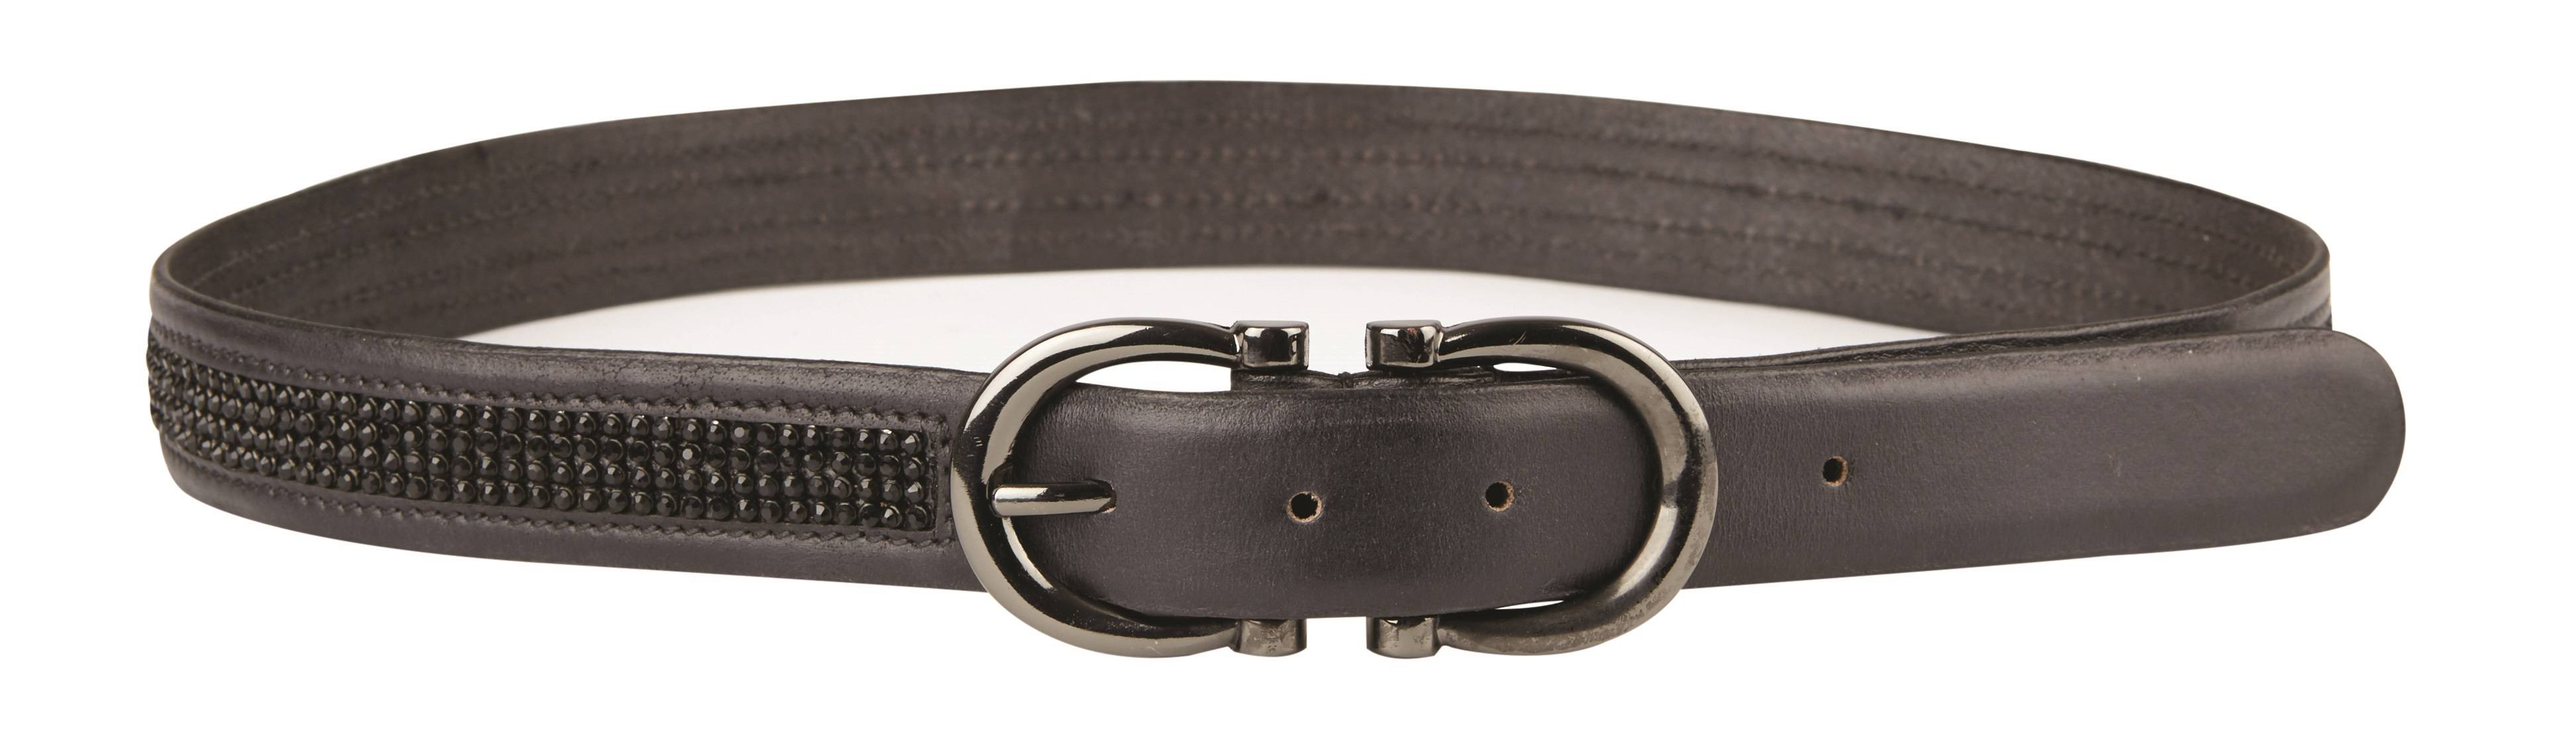 Dublin Ladies Horseshoe Belt